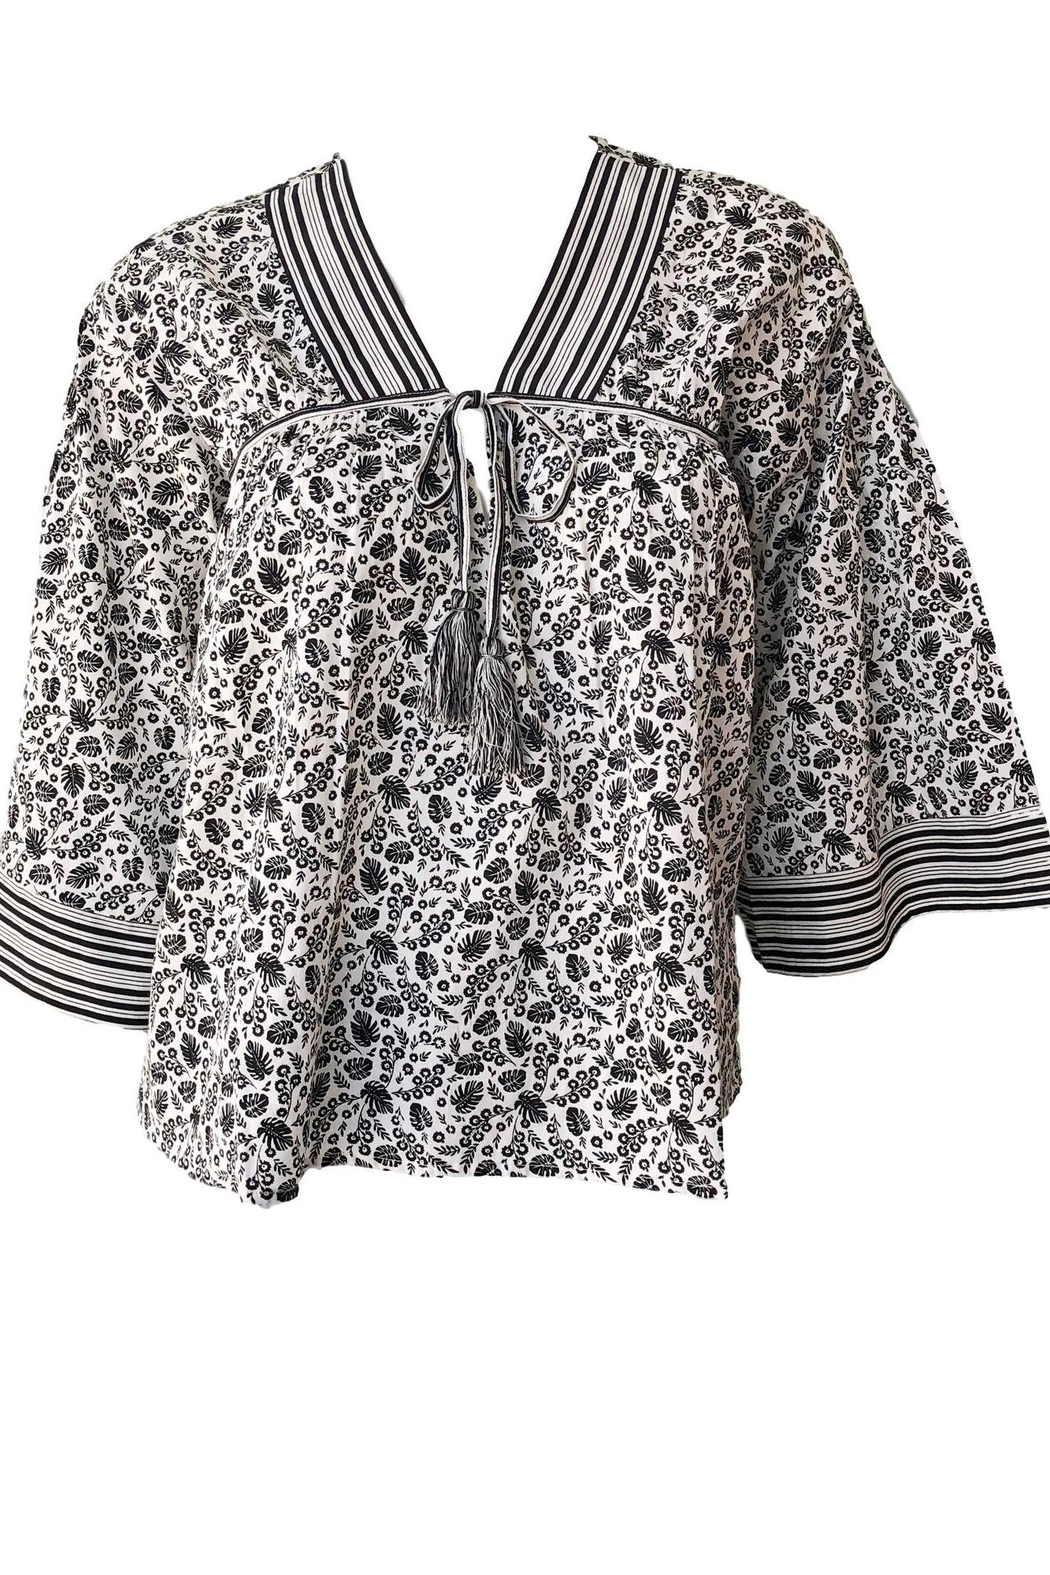 Joie Culveria Printed Blouse - Main Image